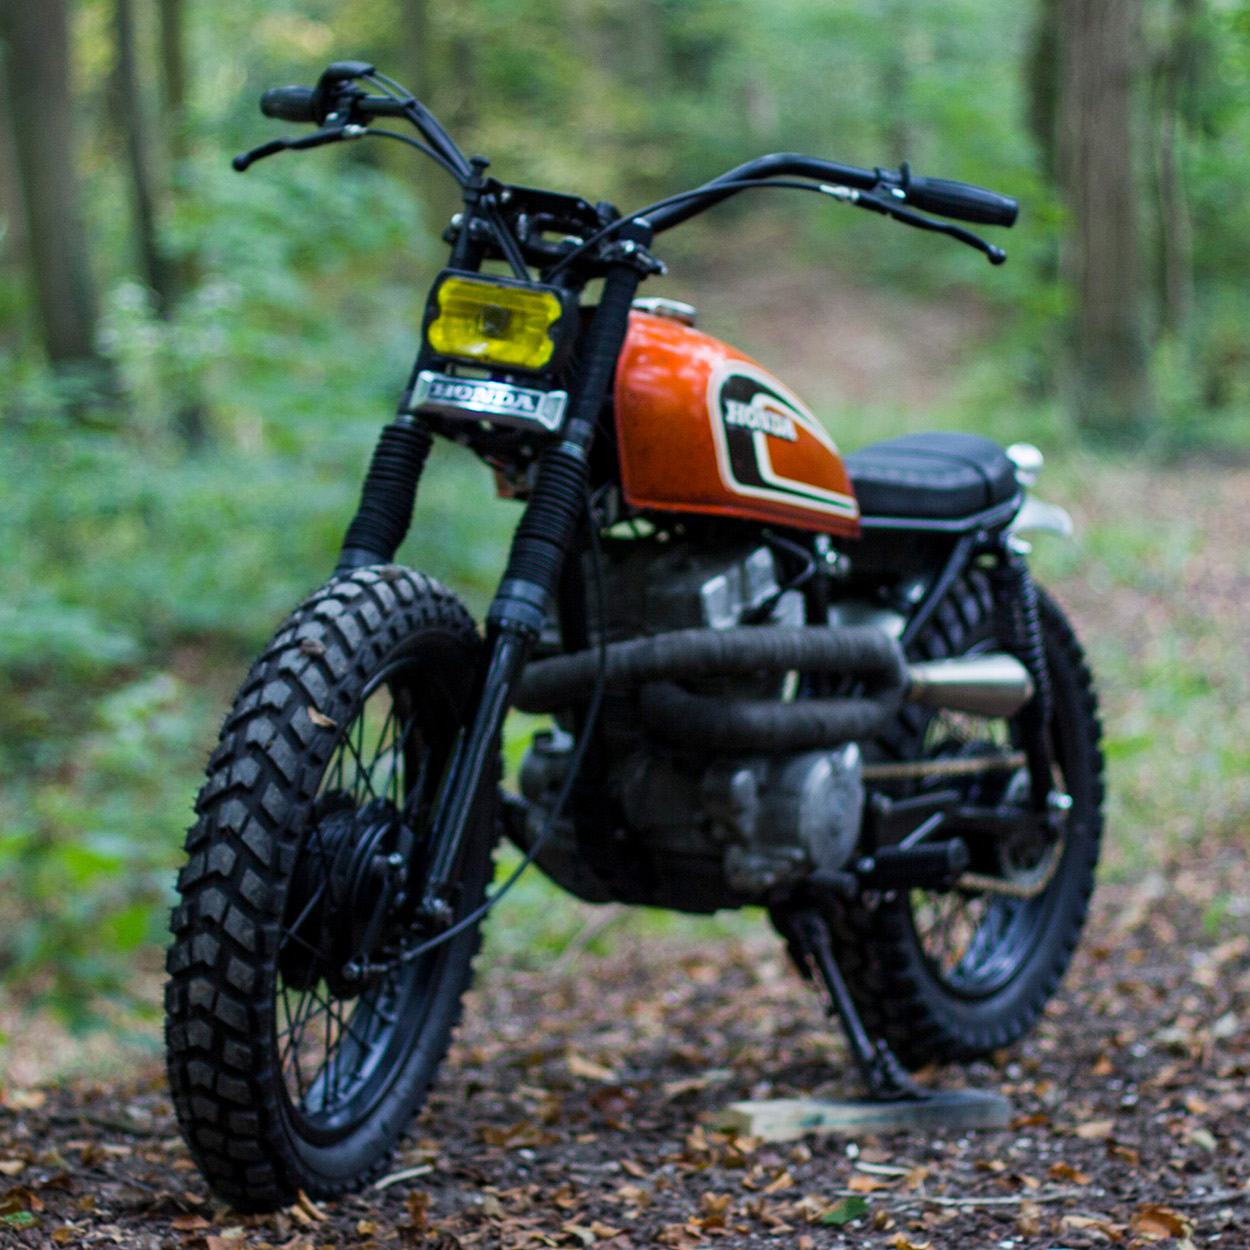 hight resolution of enter max inhulsen of the netherlands who bought his 1982 honda cm250 for 250 from a man living in a former mental hospital in the woods